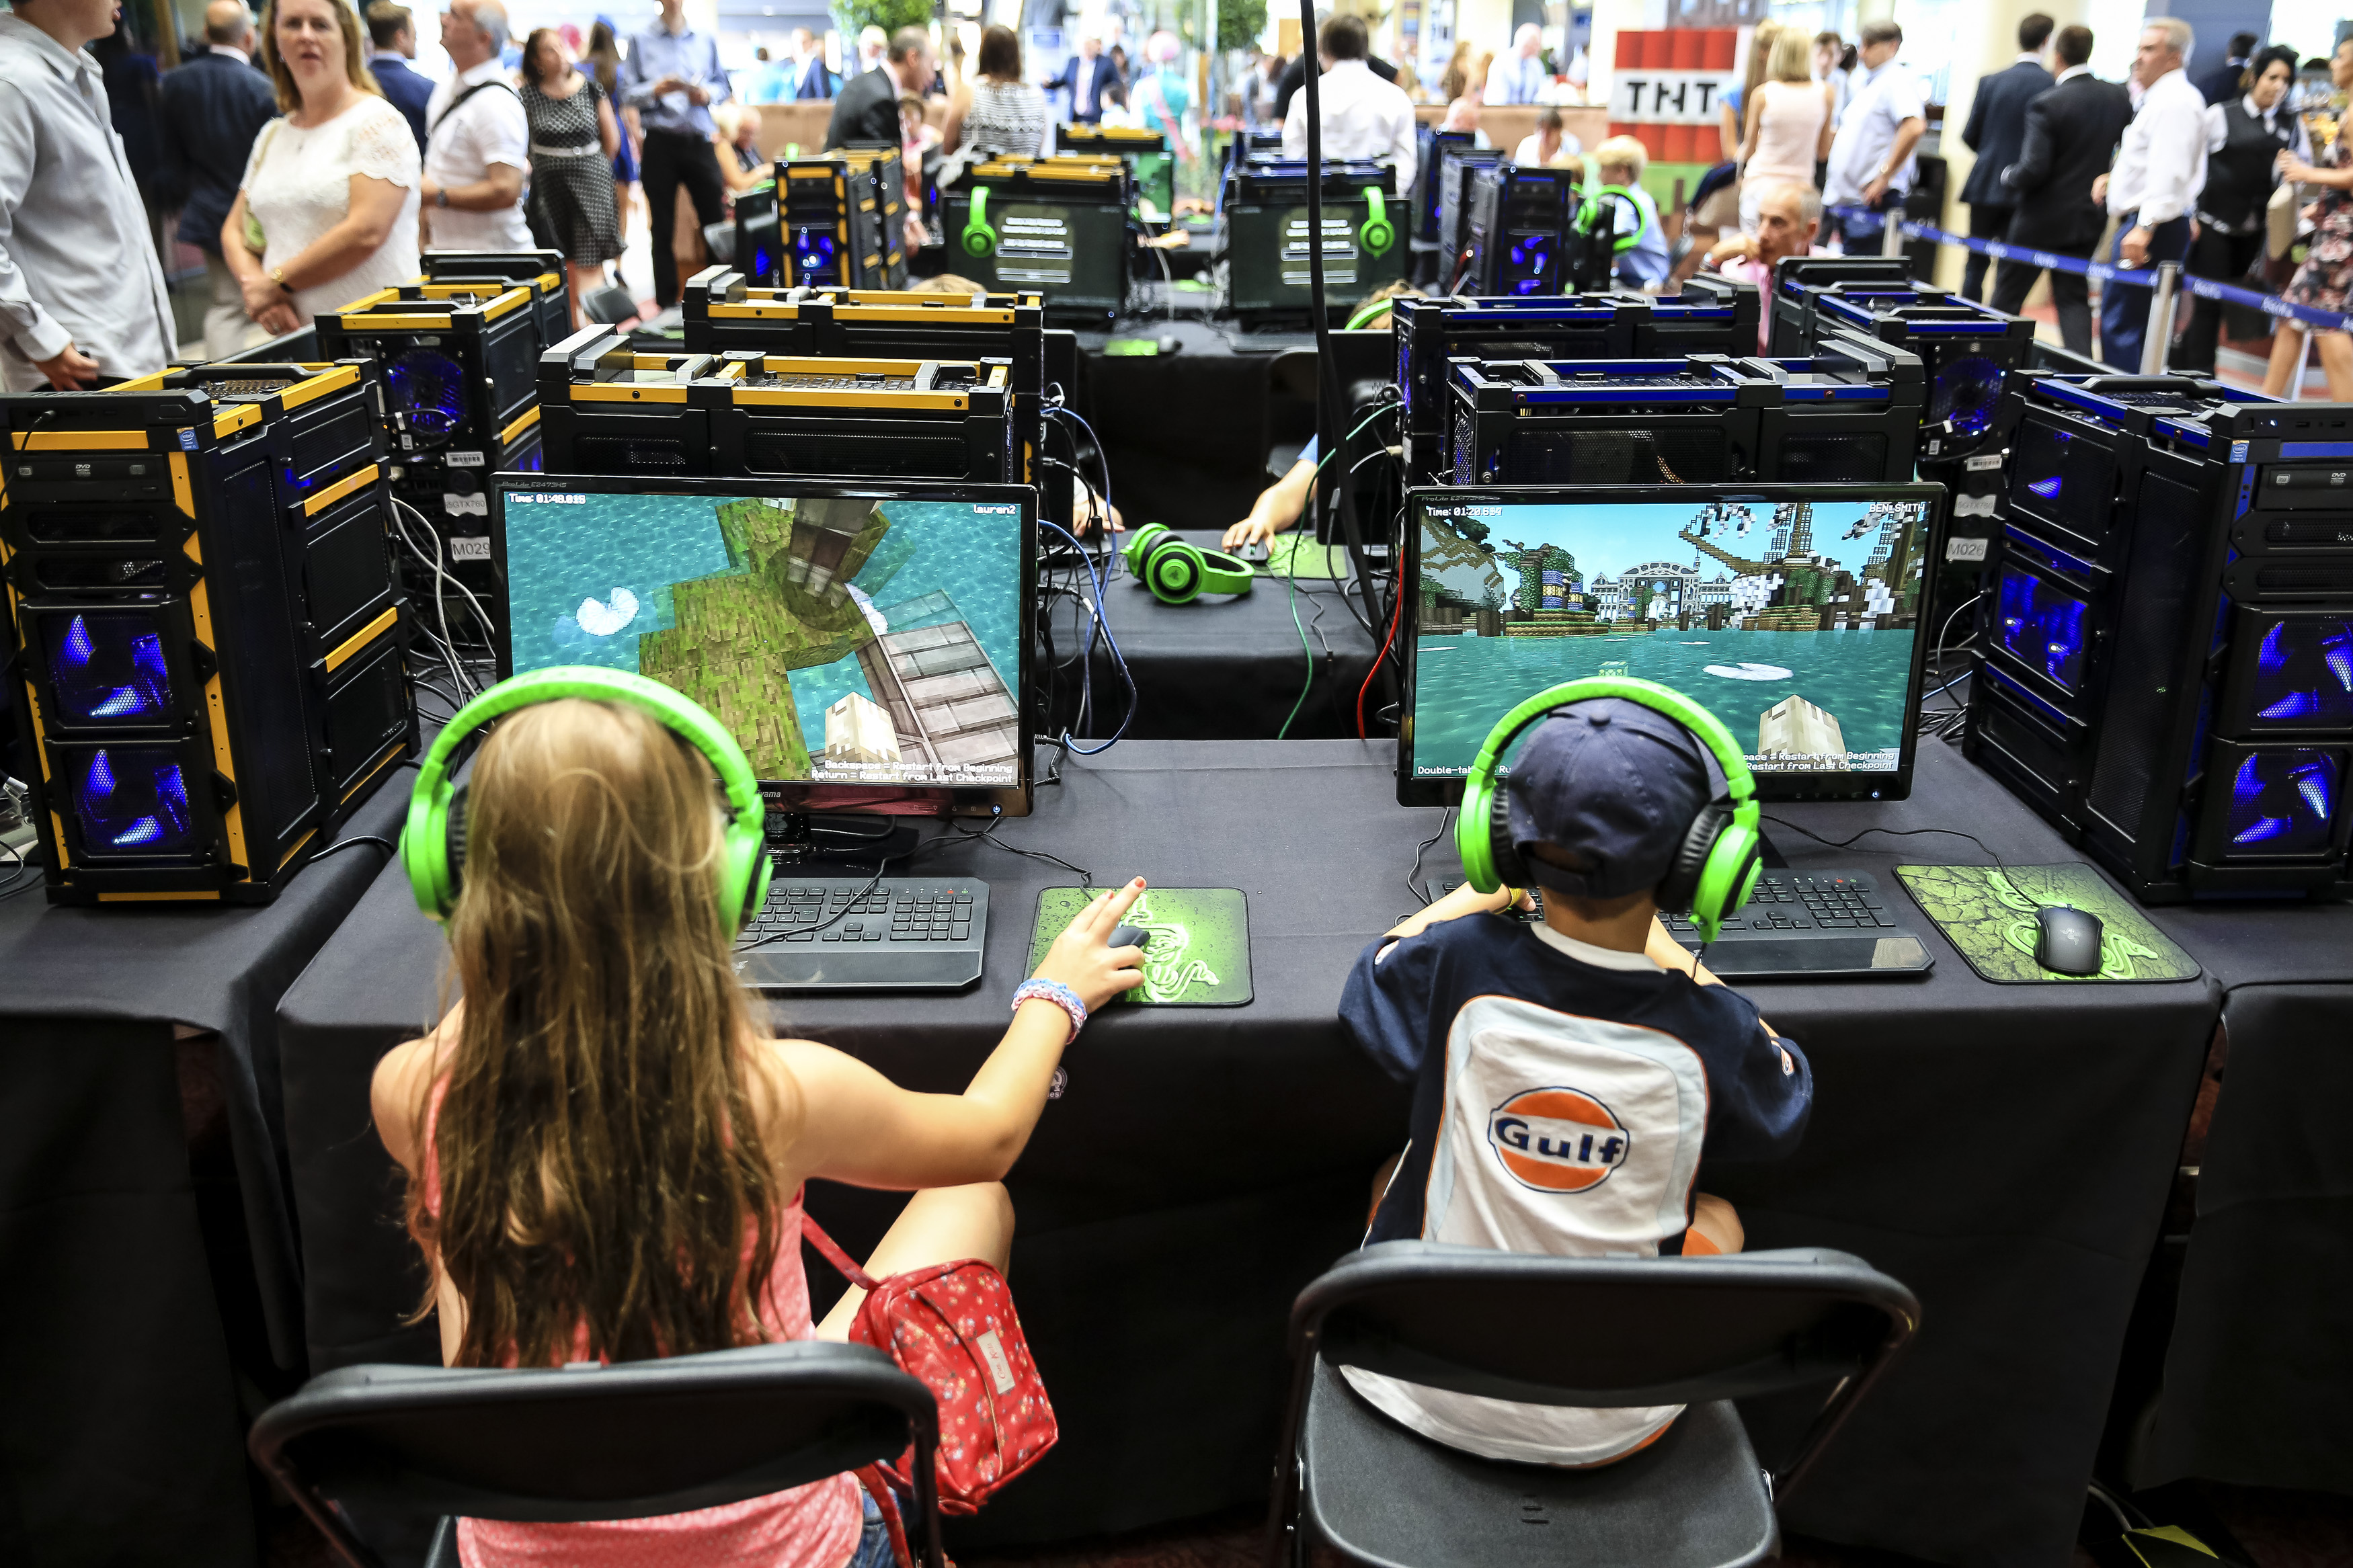 Young racegoers play in a Minecraft tournament during Ascot Dubai Duty Free Shergar Cup and Concert at Ascot Racecourse on August 9, 2014 in Ascot, England.